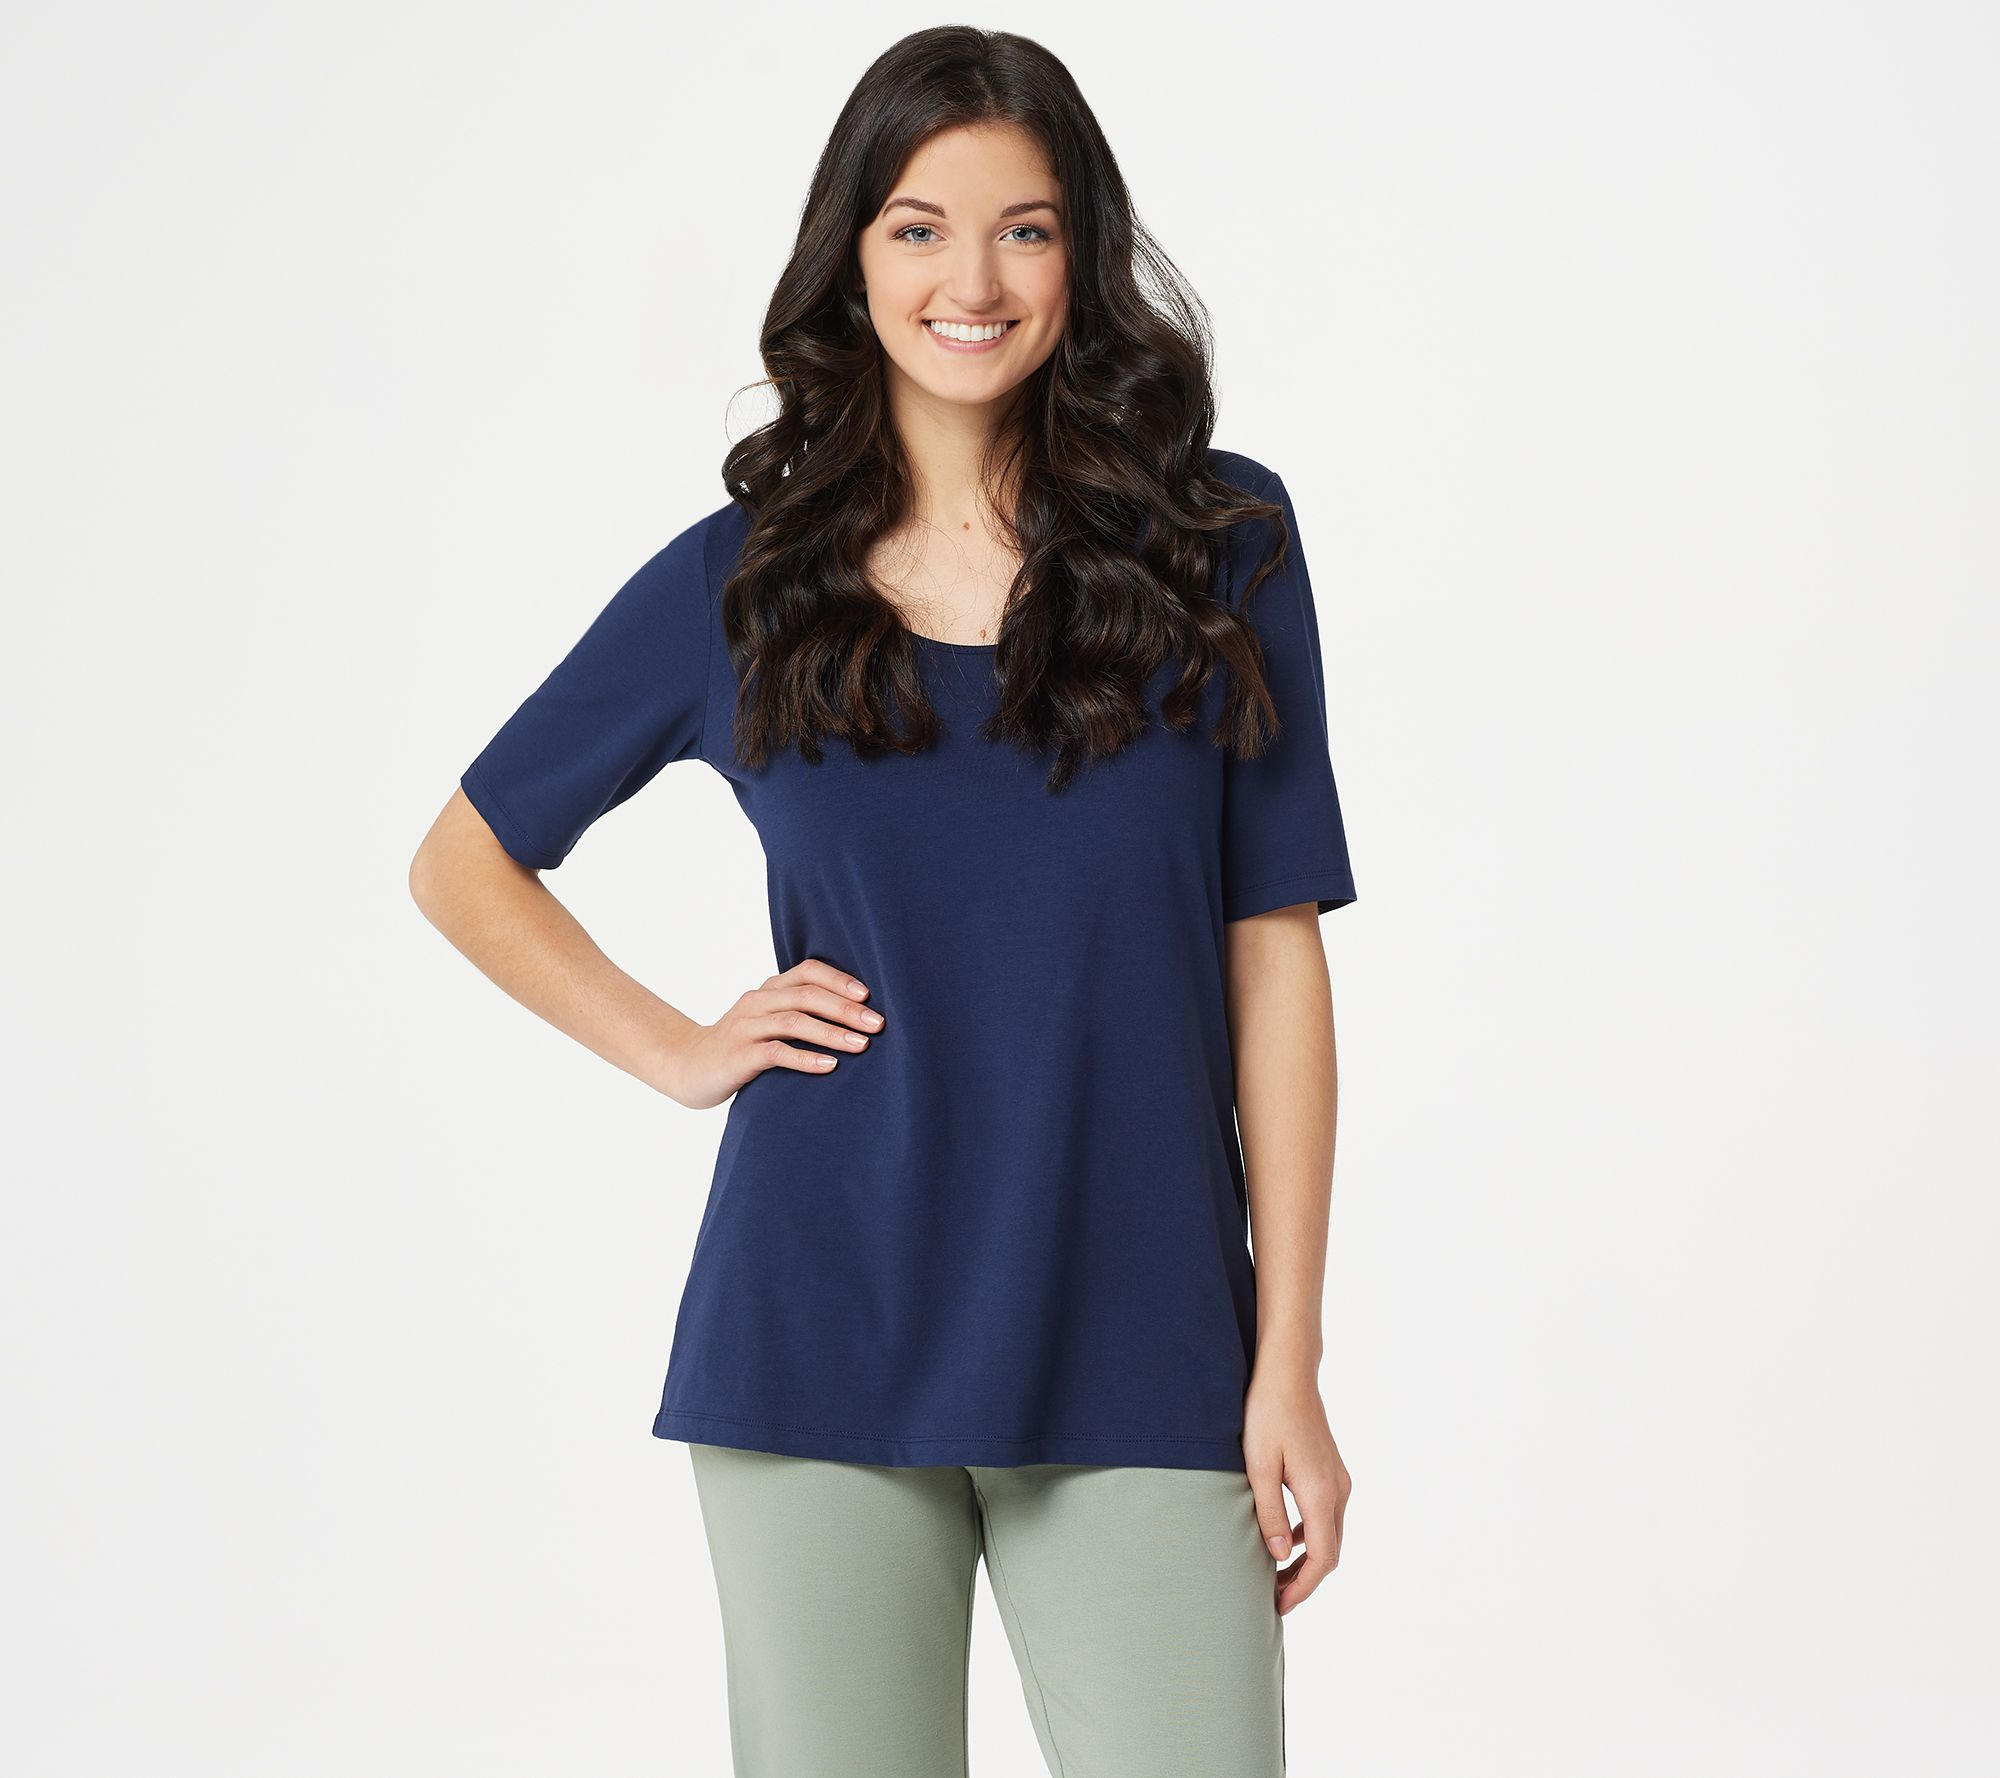 Blouses & Tops — Fashion — QVC.com